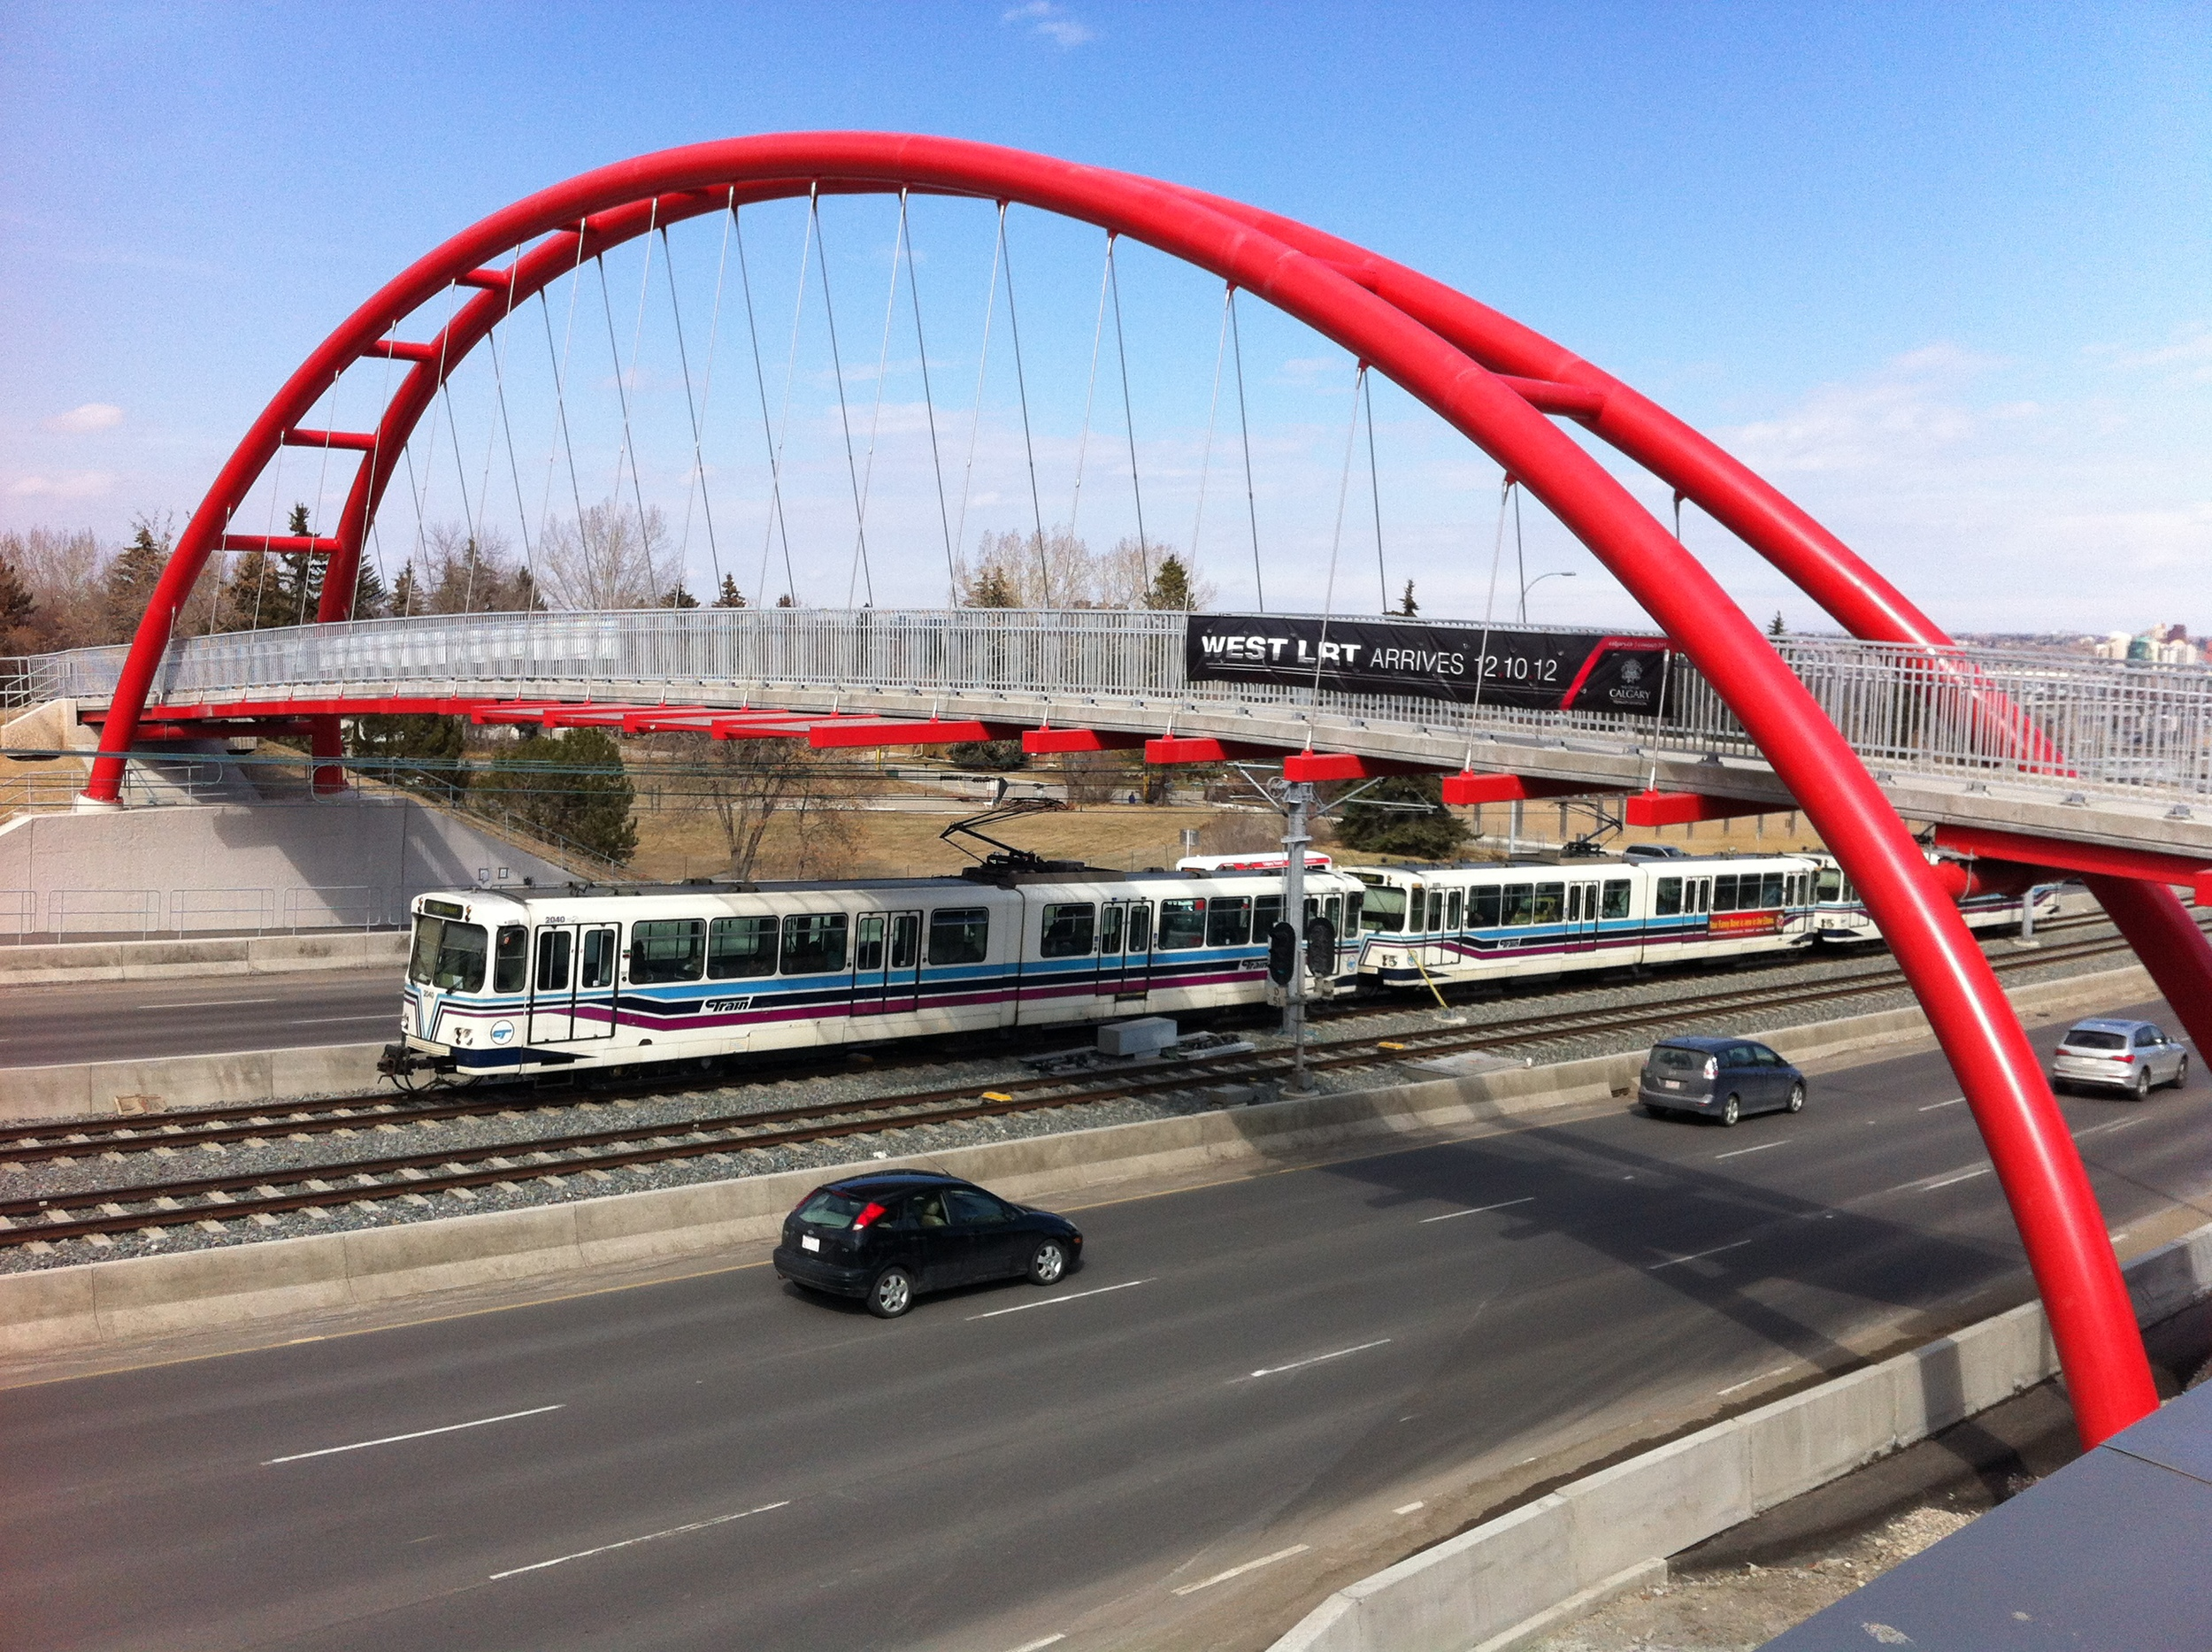 The bridge spans the river of buses, trains and automobiles entering and exiting the Downtown along Bow Trail.